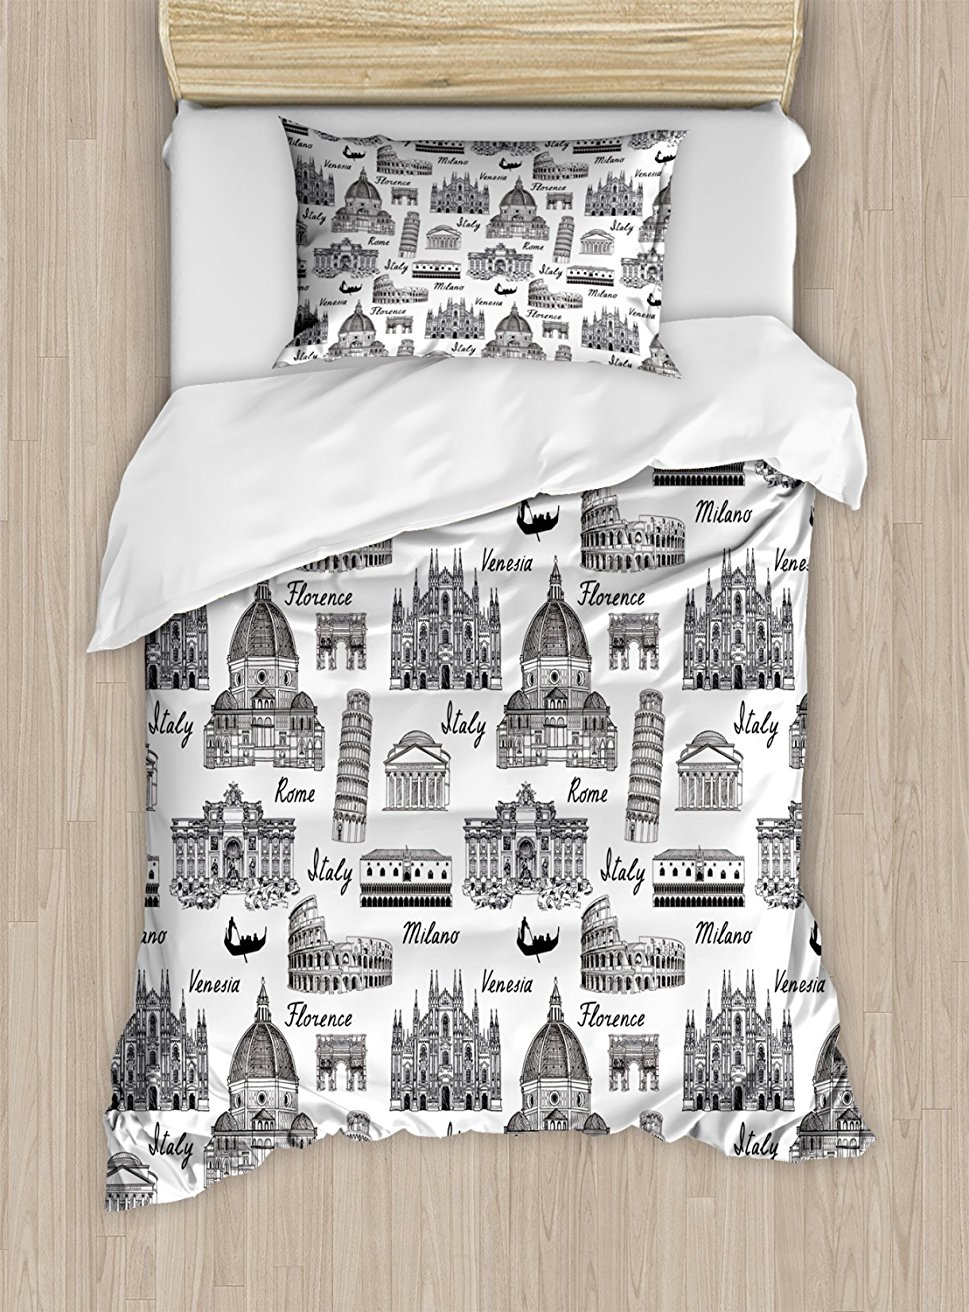 City Duvet Cover Set Monochrome Sketch Style Famous Places from Italy Rome Milano European Architecture 4 Piece Bedding Set